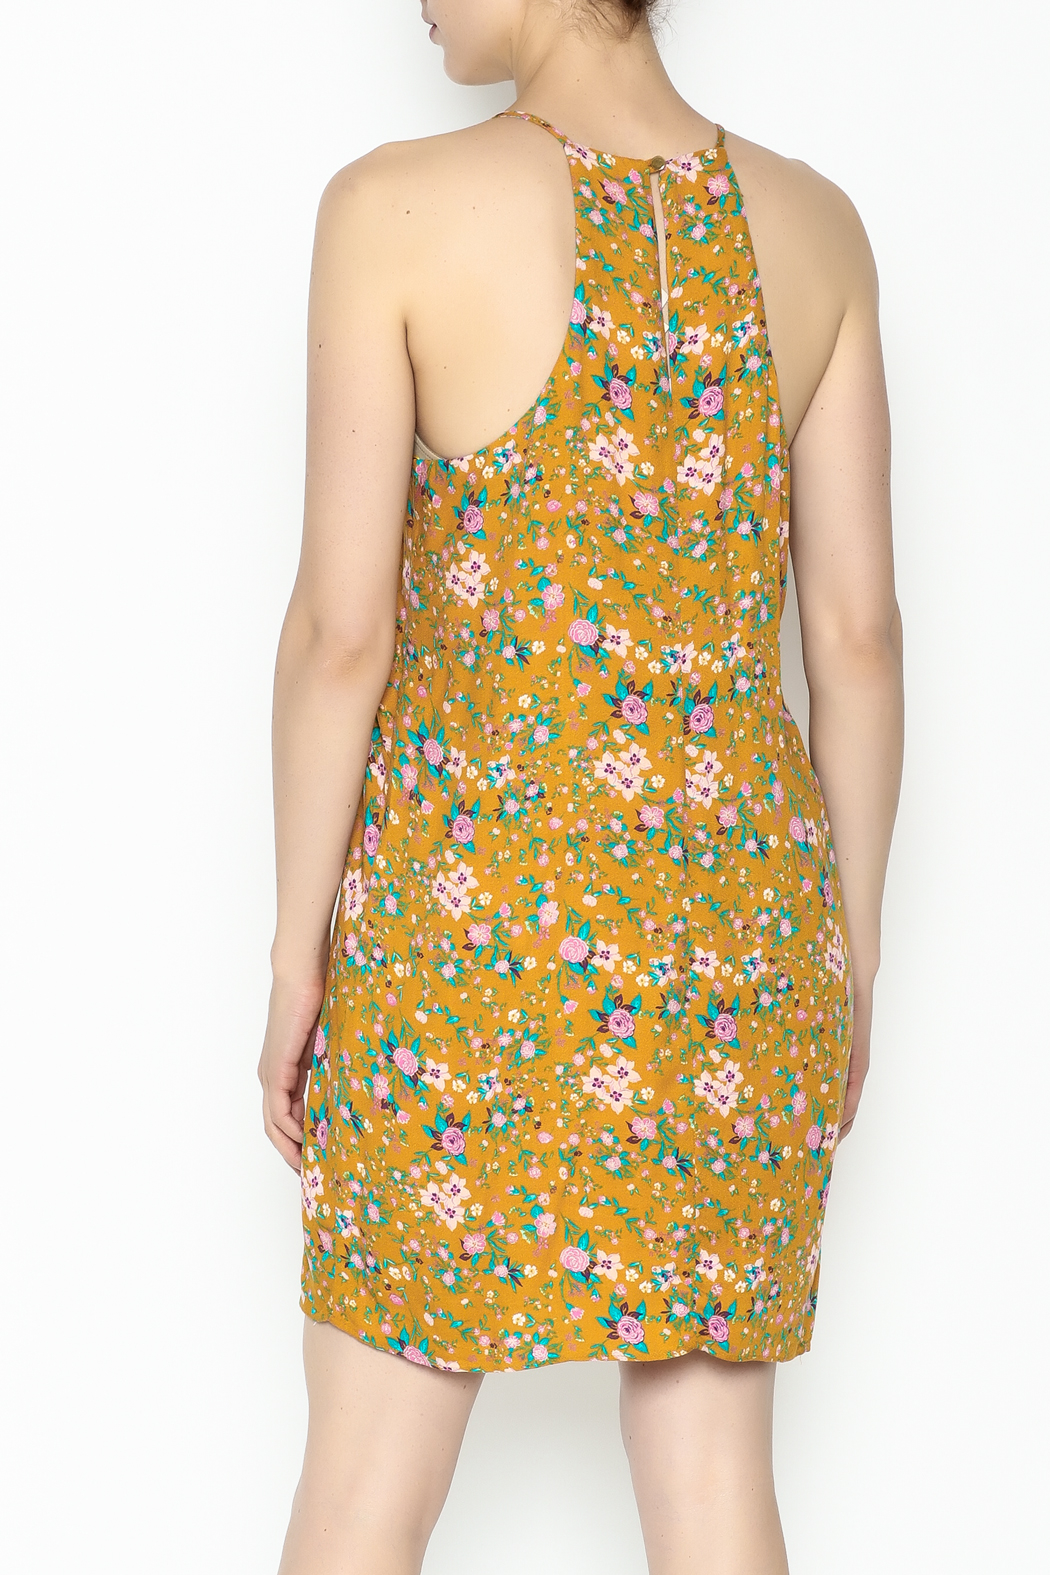 Everly Yellow Floral Shift Dress - Back Cropped Image